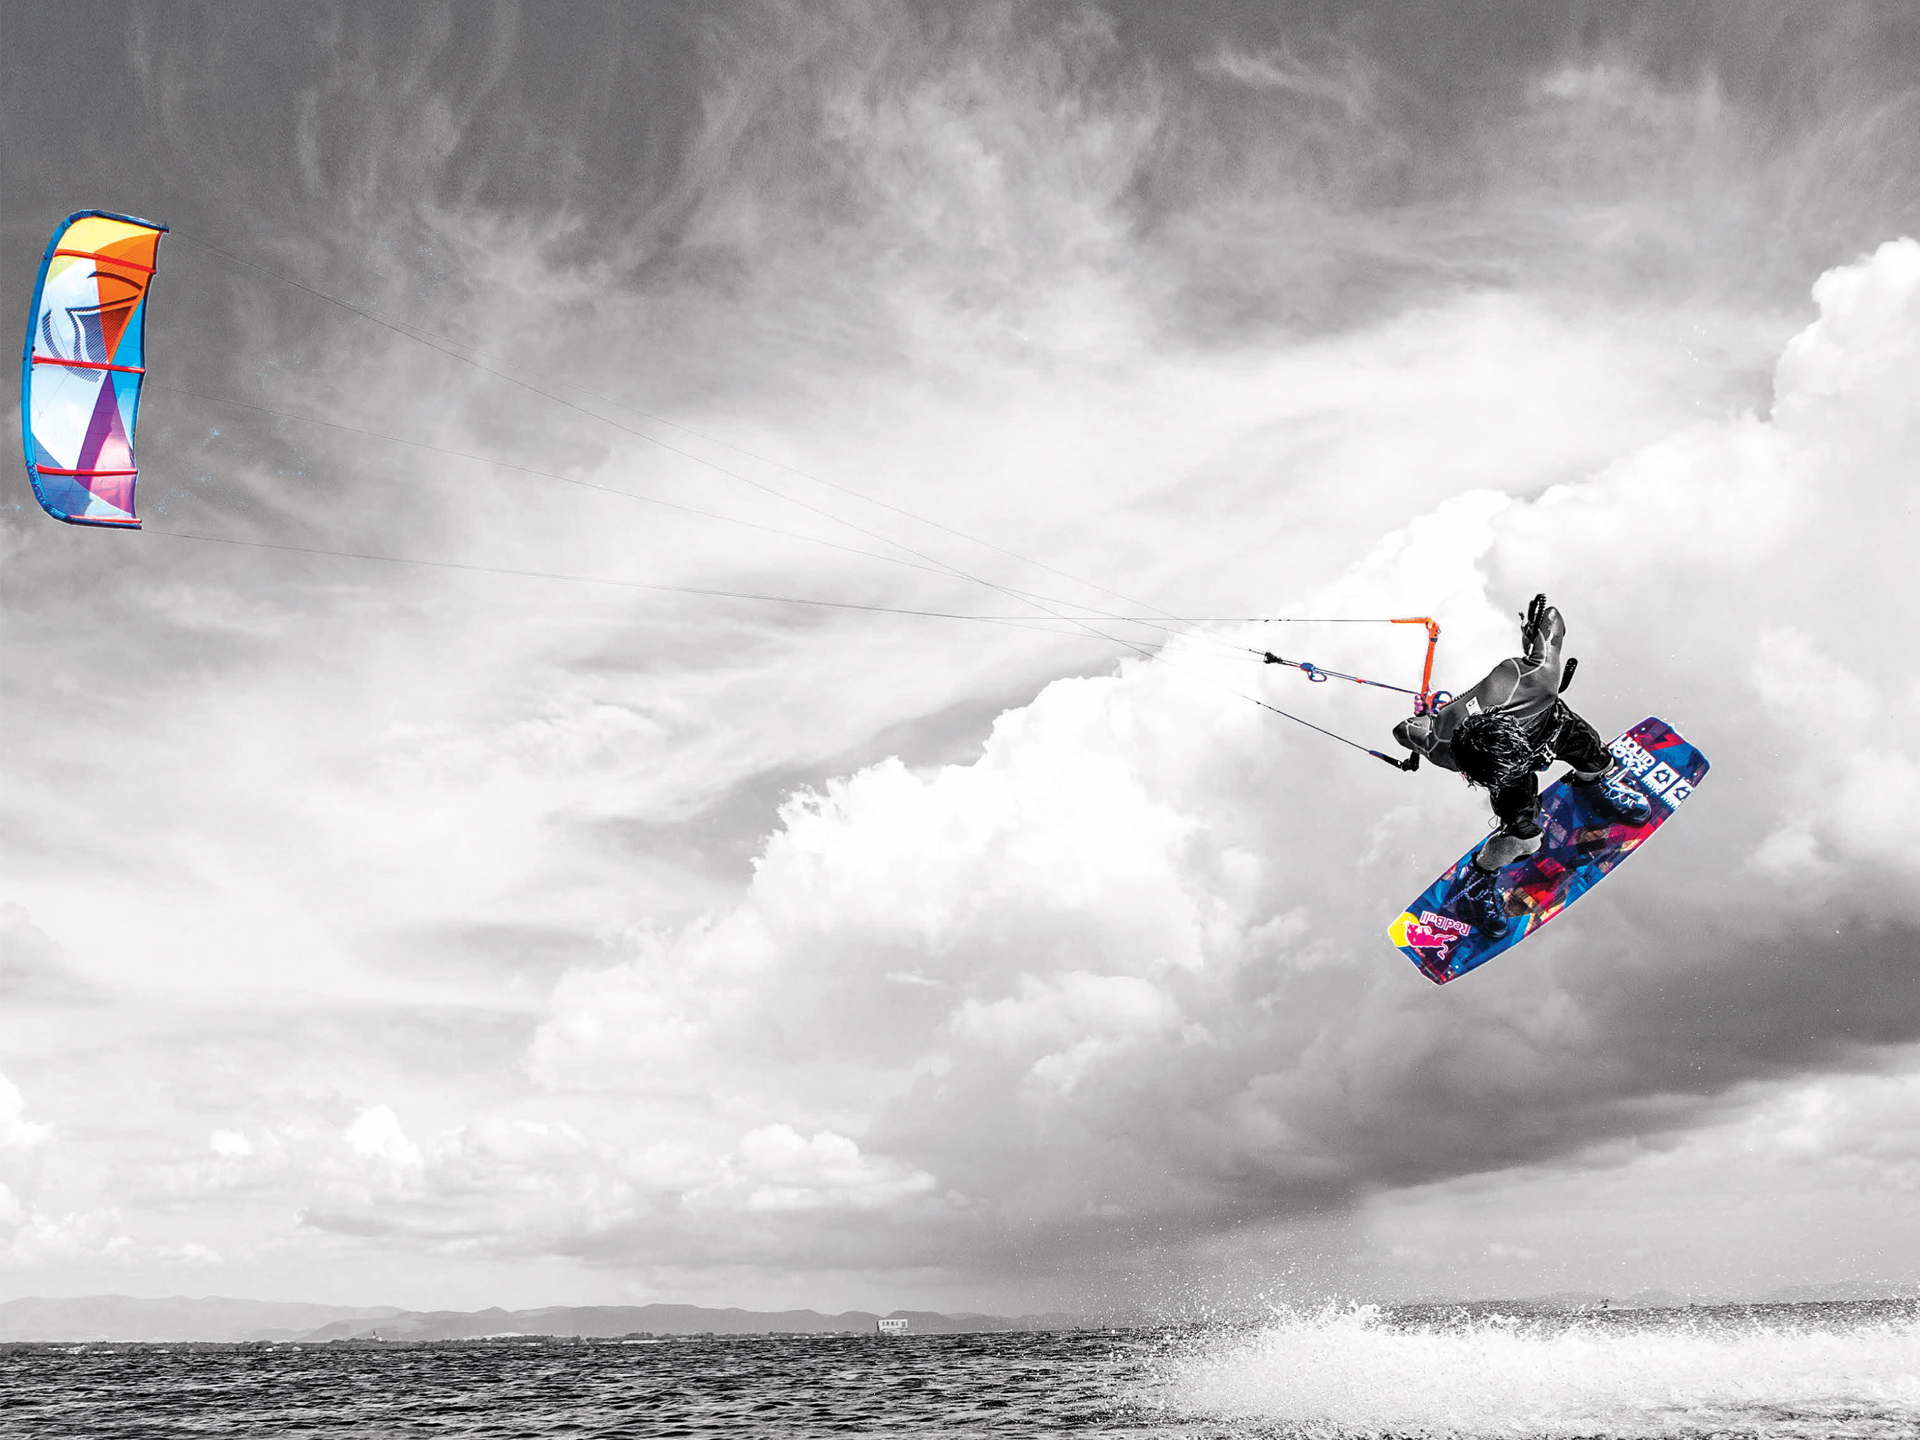 kitesurf wallpaper image - Christophe Tack on the 2015 Liquid Force HIFI-X kite and element kiteboard during a handle pass  - in resolution: Standard 4:3 1920 X 1440